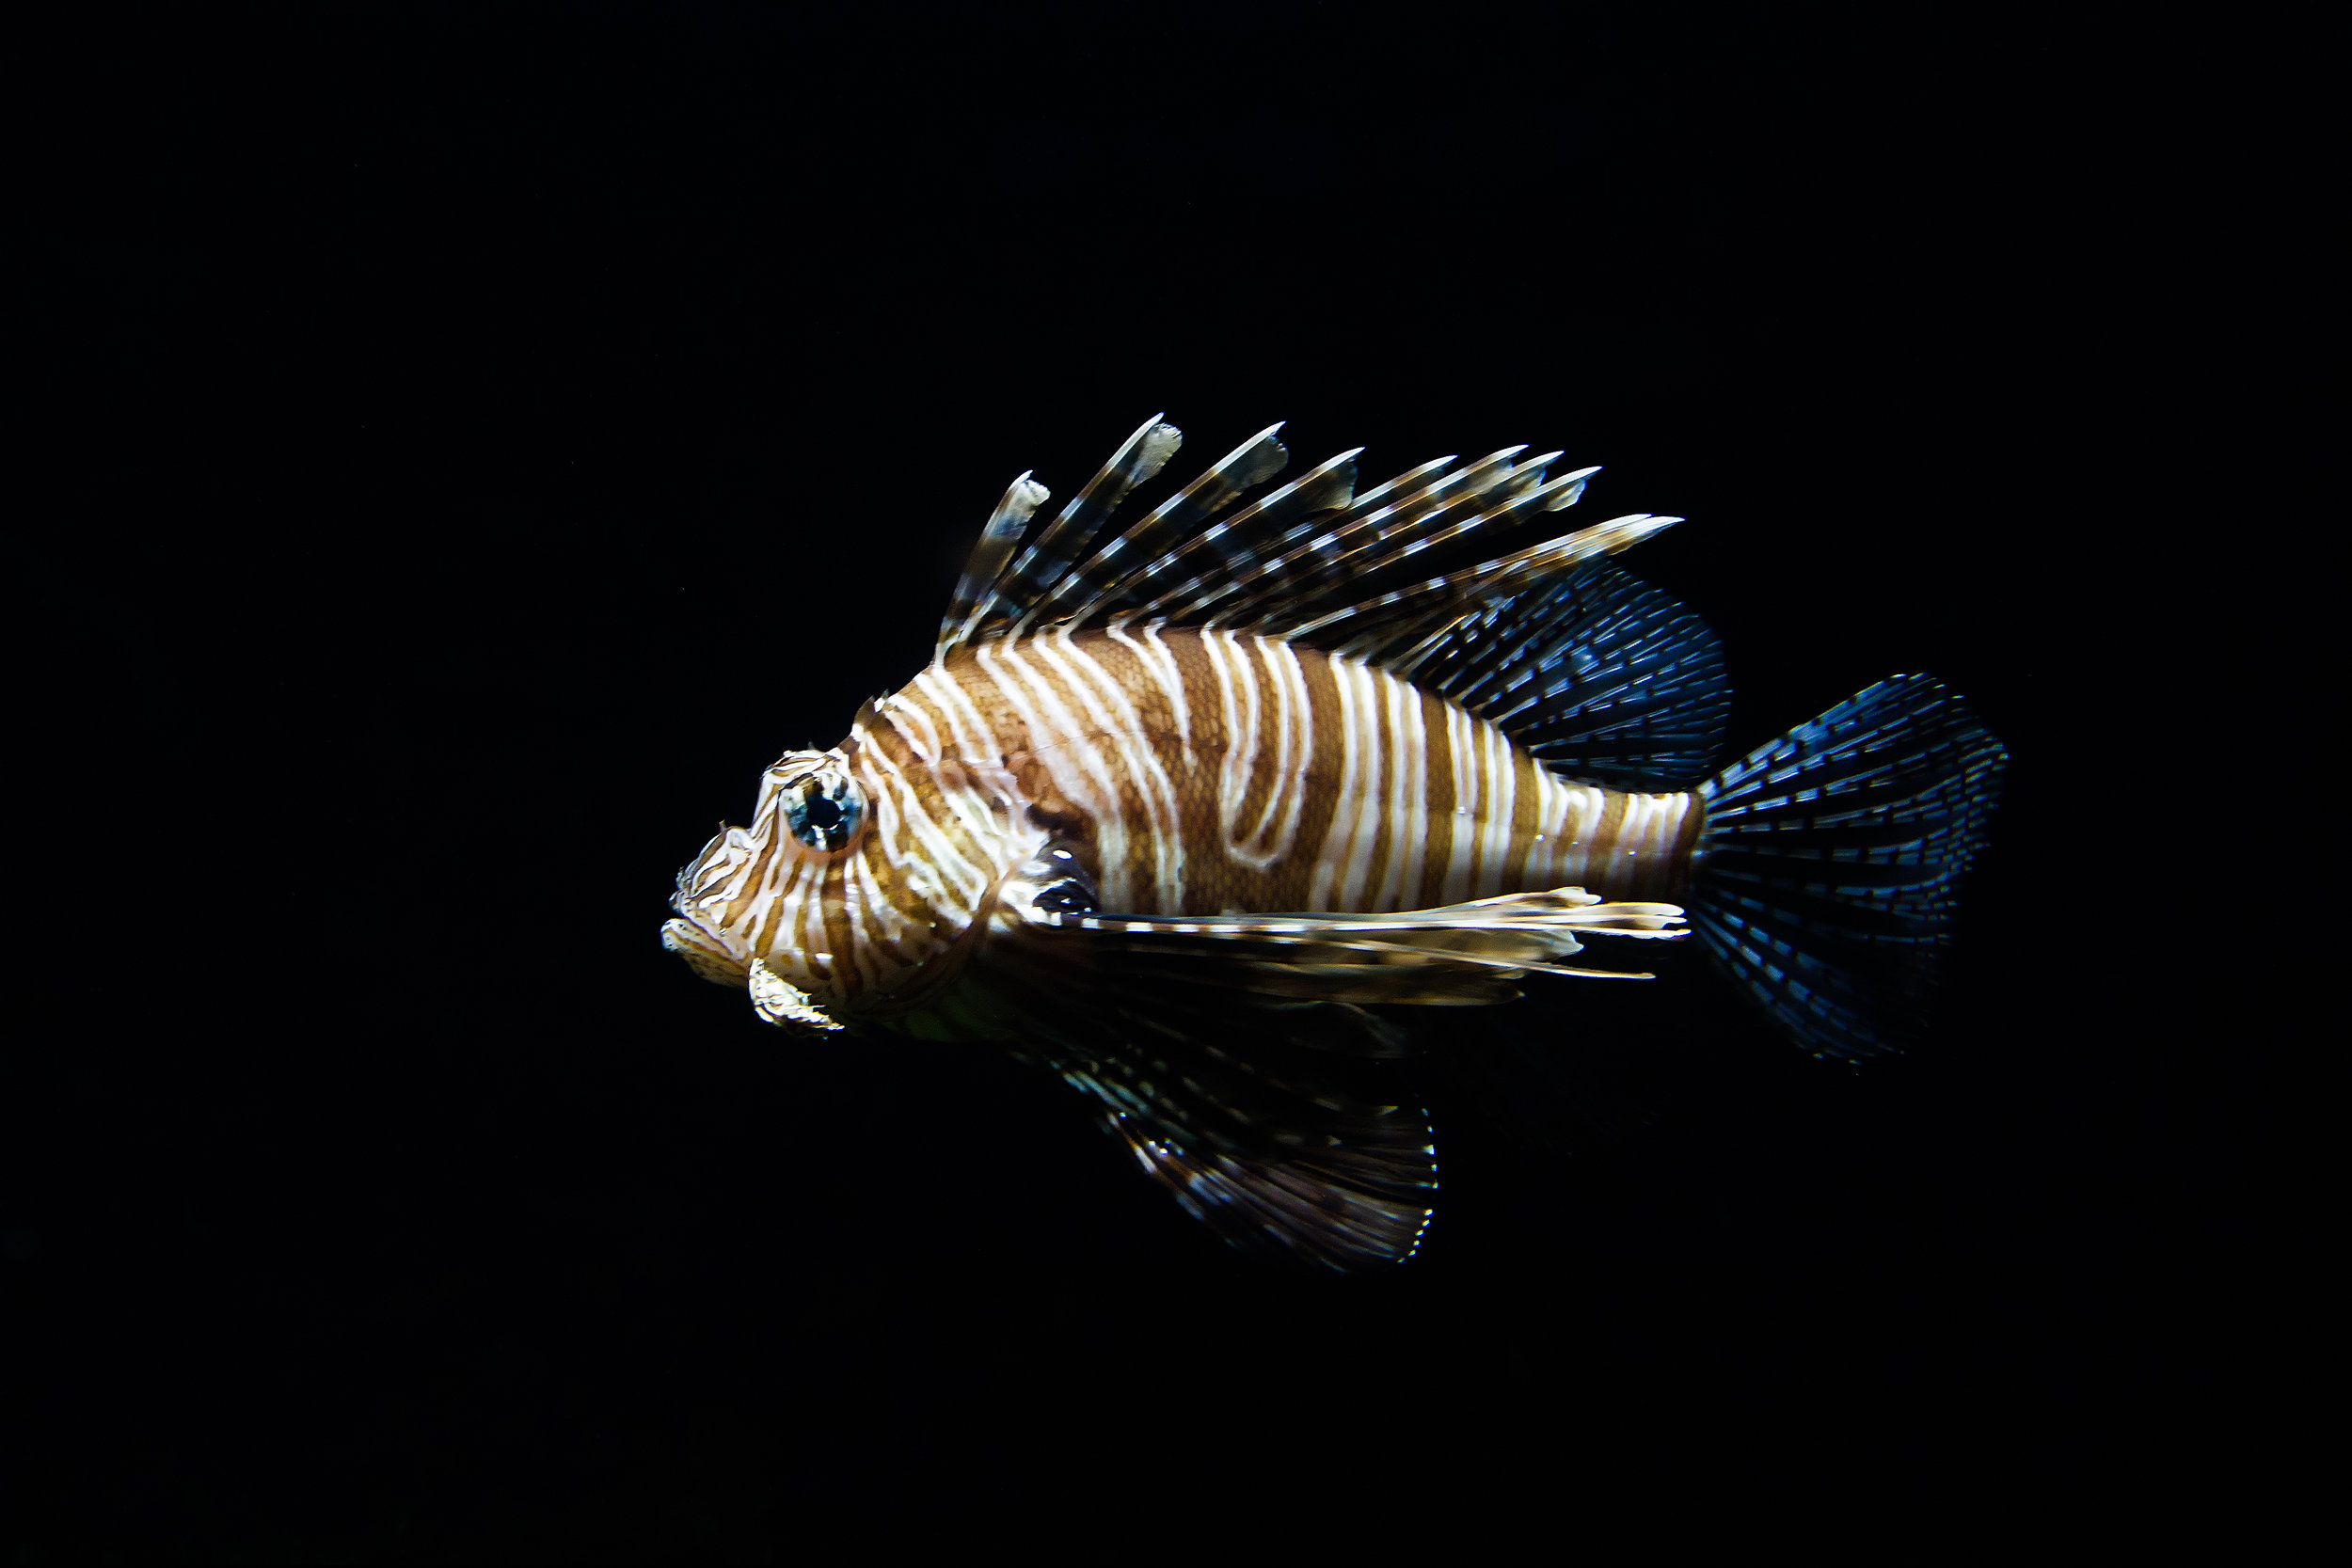 Lionfish, brought to the Caribbean by shipping vessels from the Indo-Pacific, have caused mass extinctions of plant and animal species in the Caribbean region due to being voracious predators, fundamentally altering the ecosystem. Photo credit: Mathijs Vos